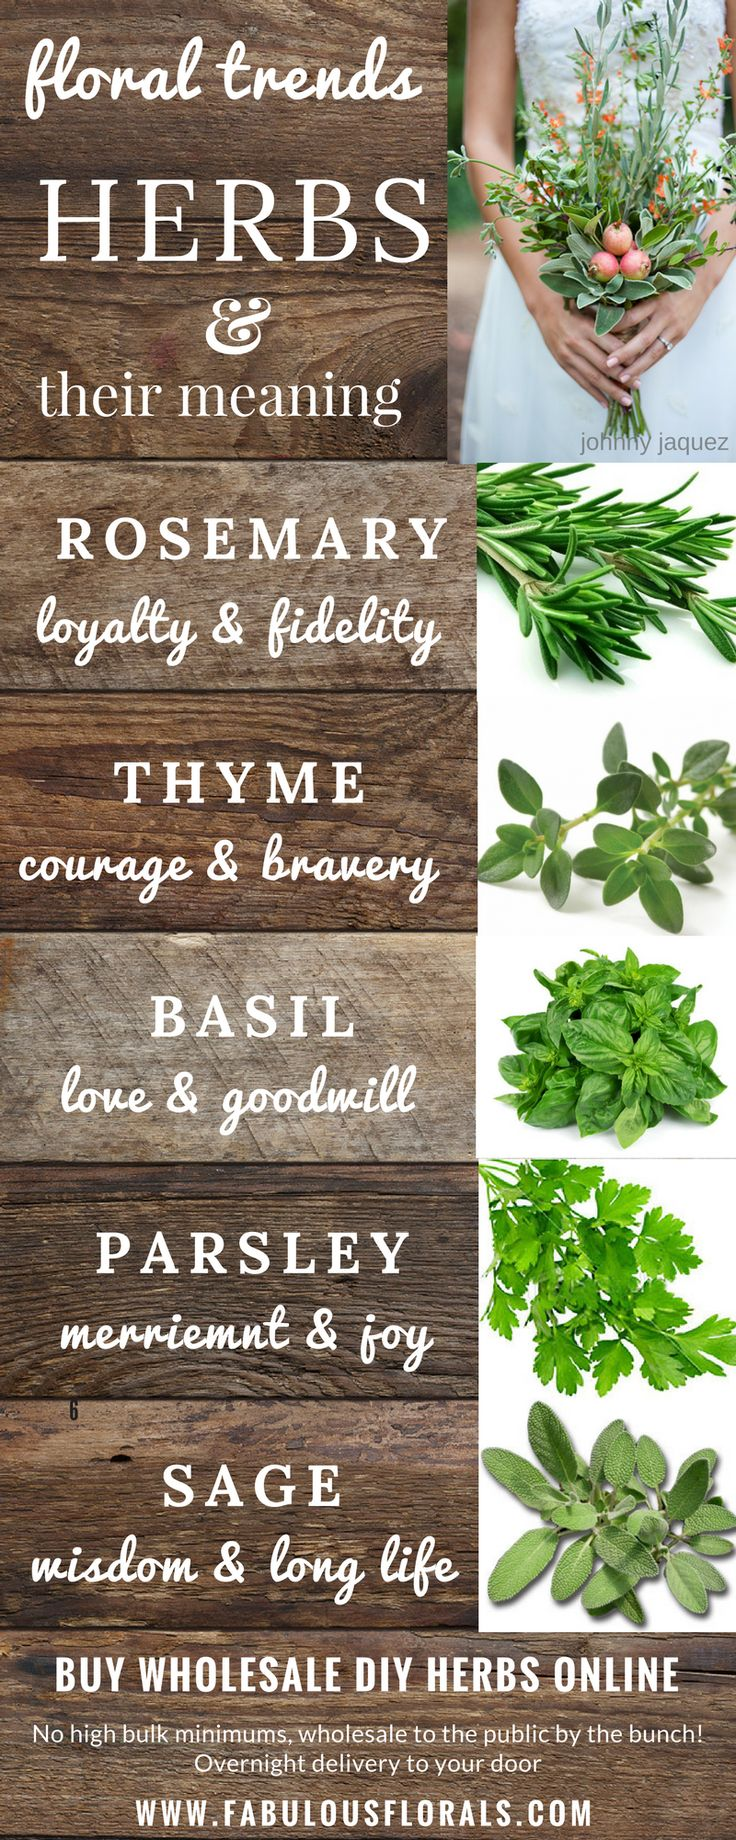 Herbs & their meanings. For table decor plants?